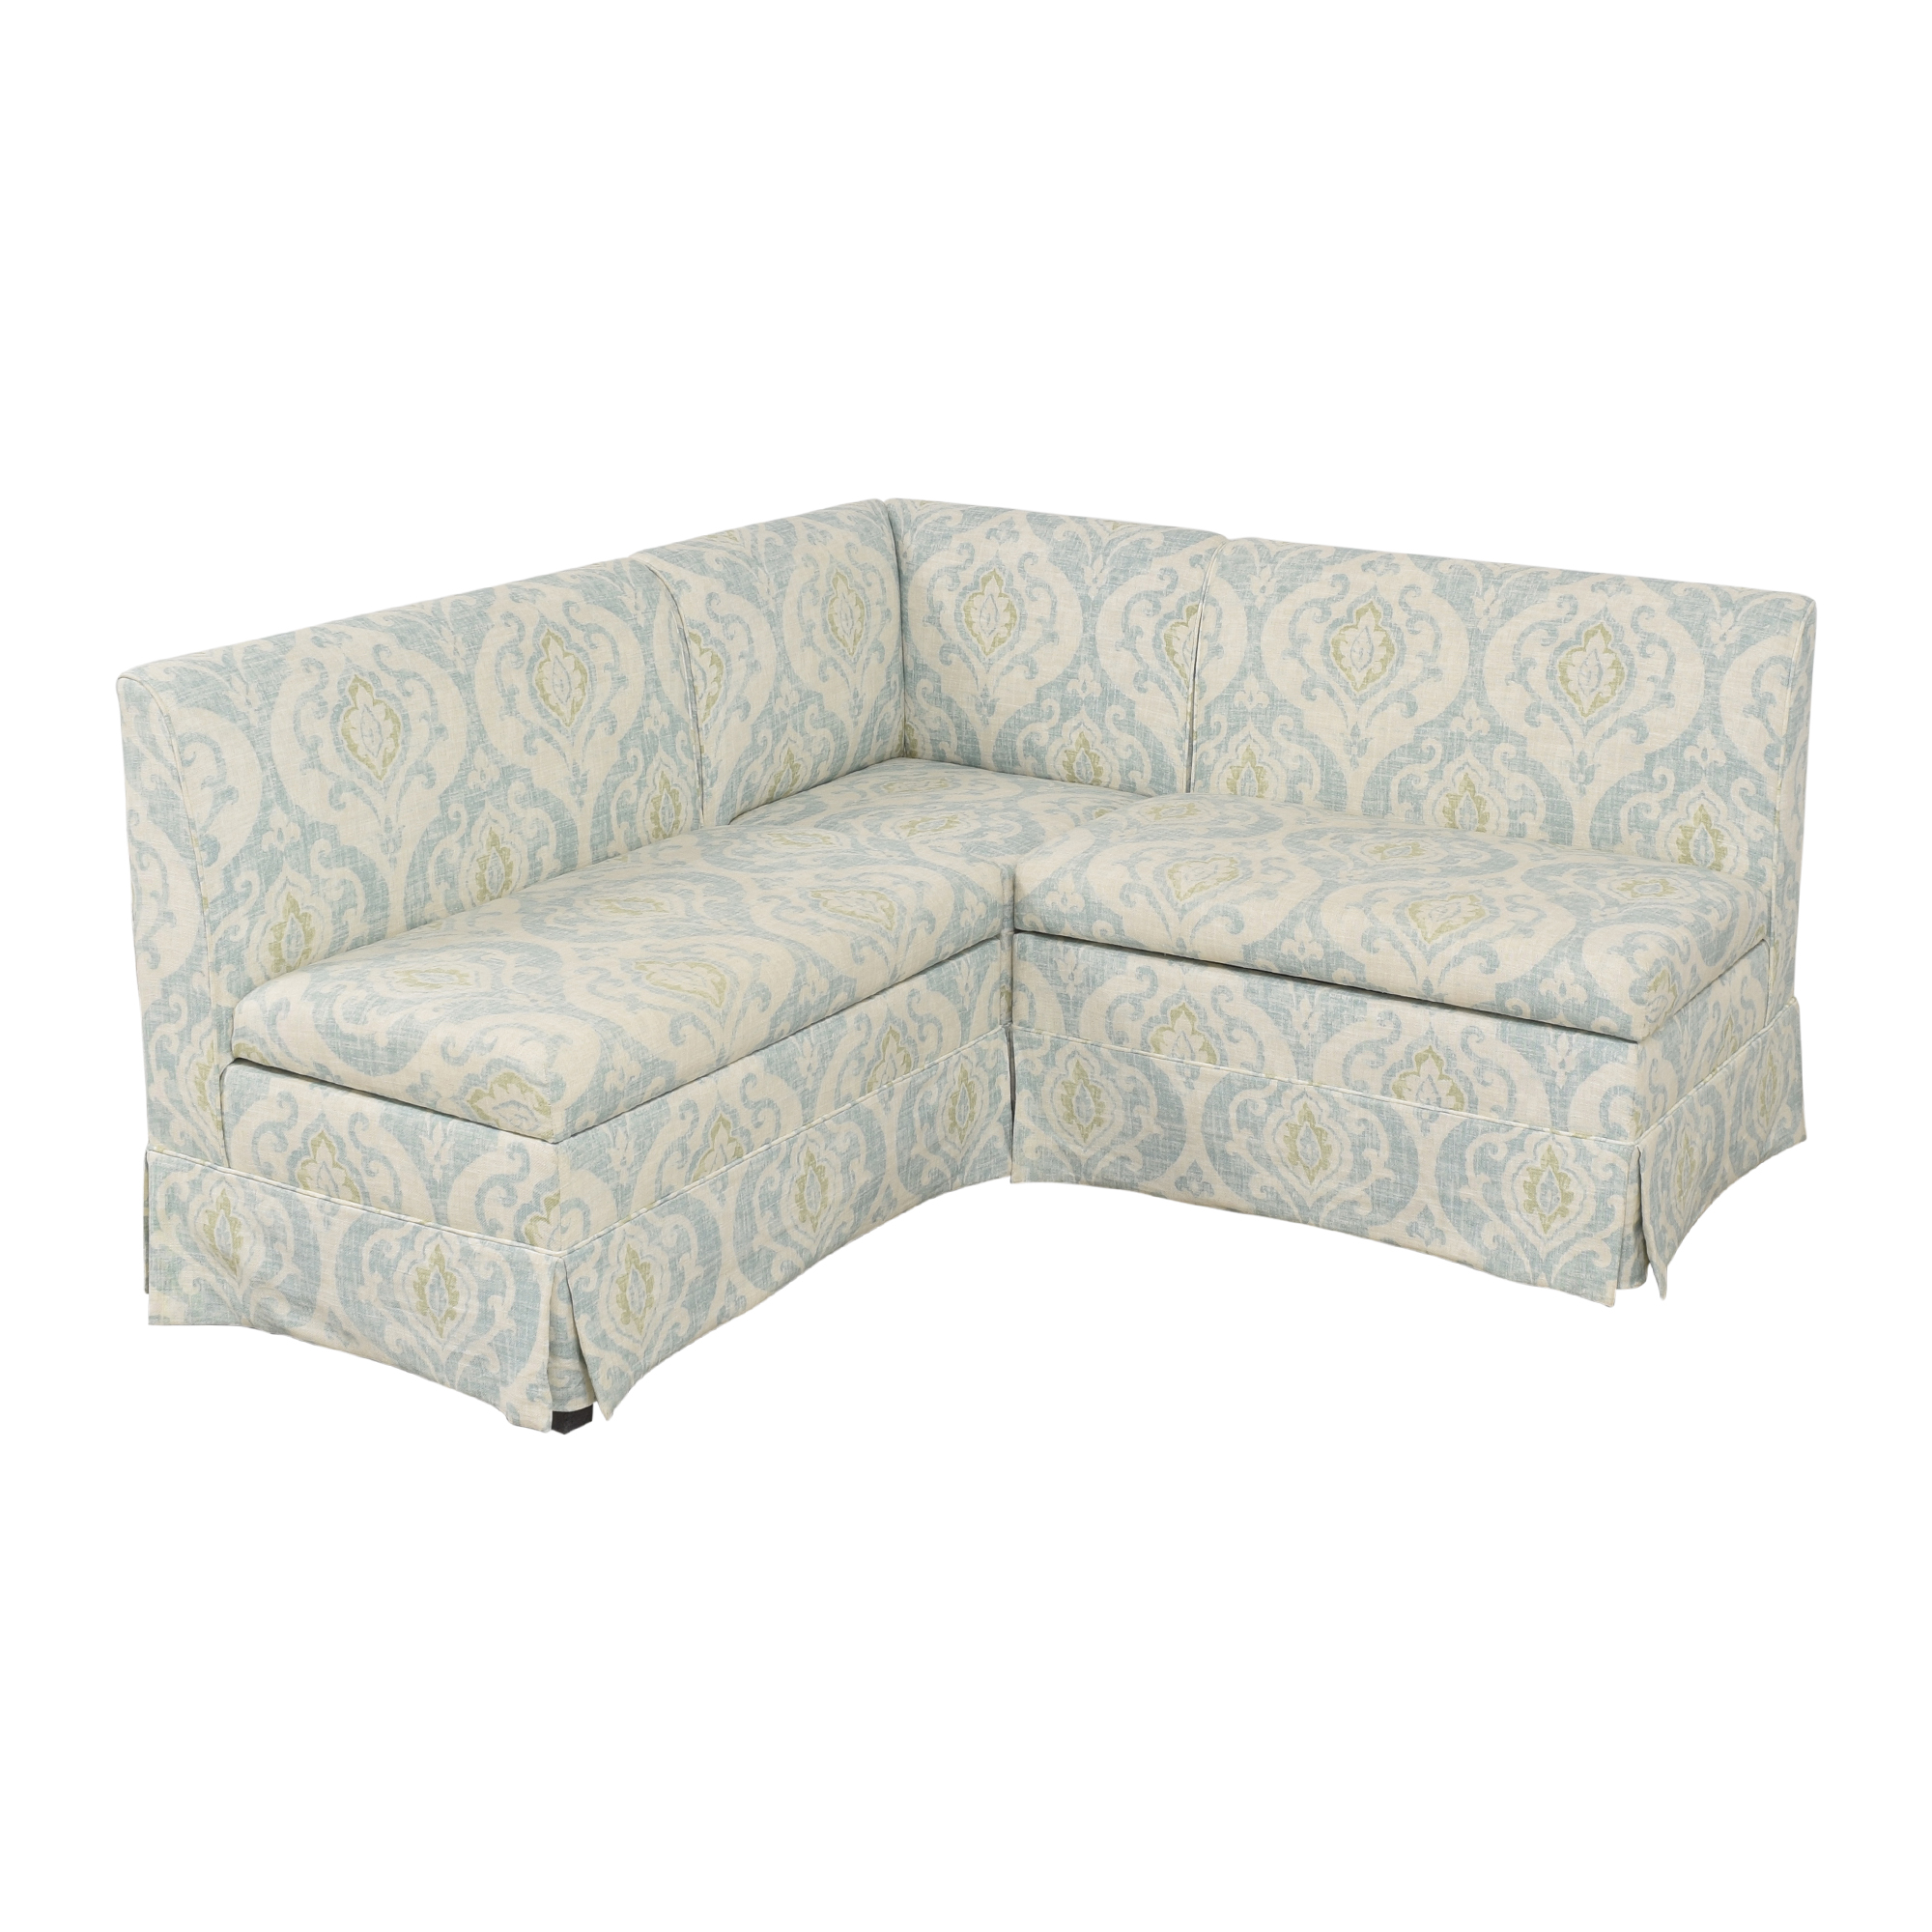 Wisteria Wisteria Sectional Storage Banquette for sale